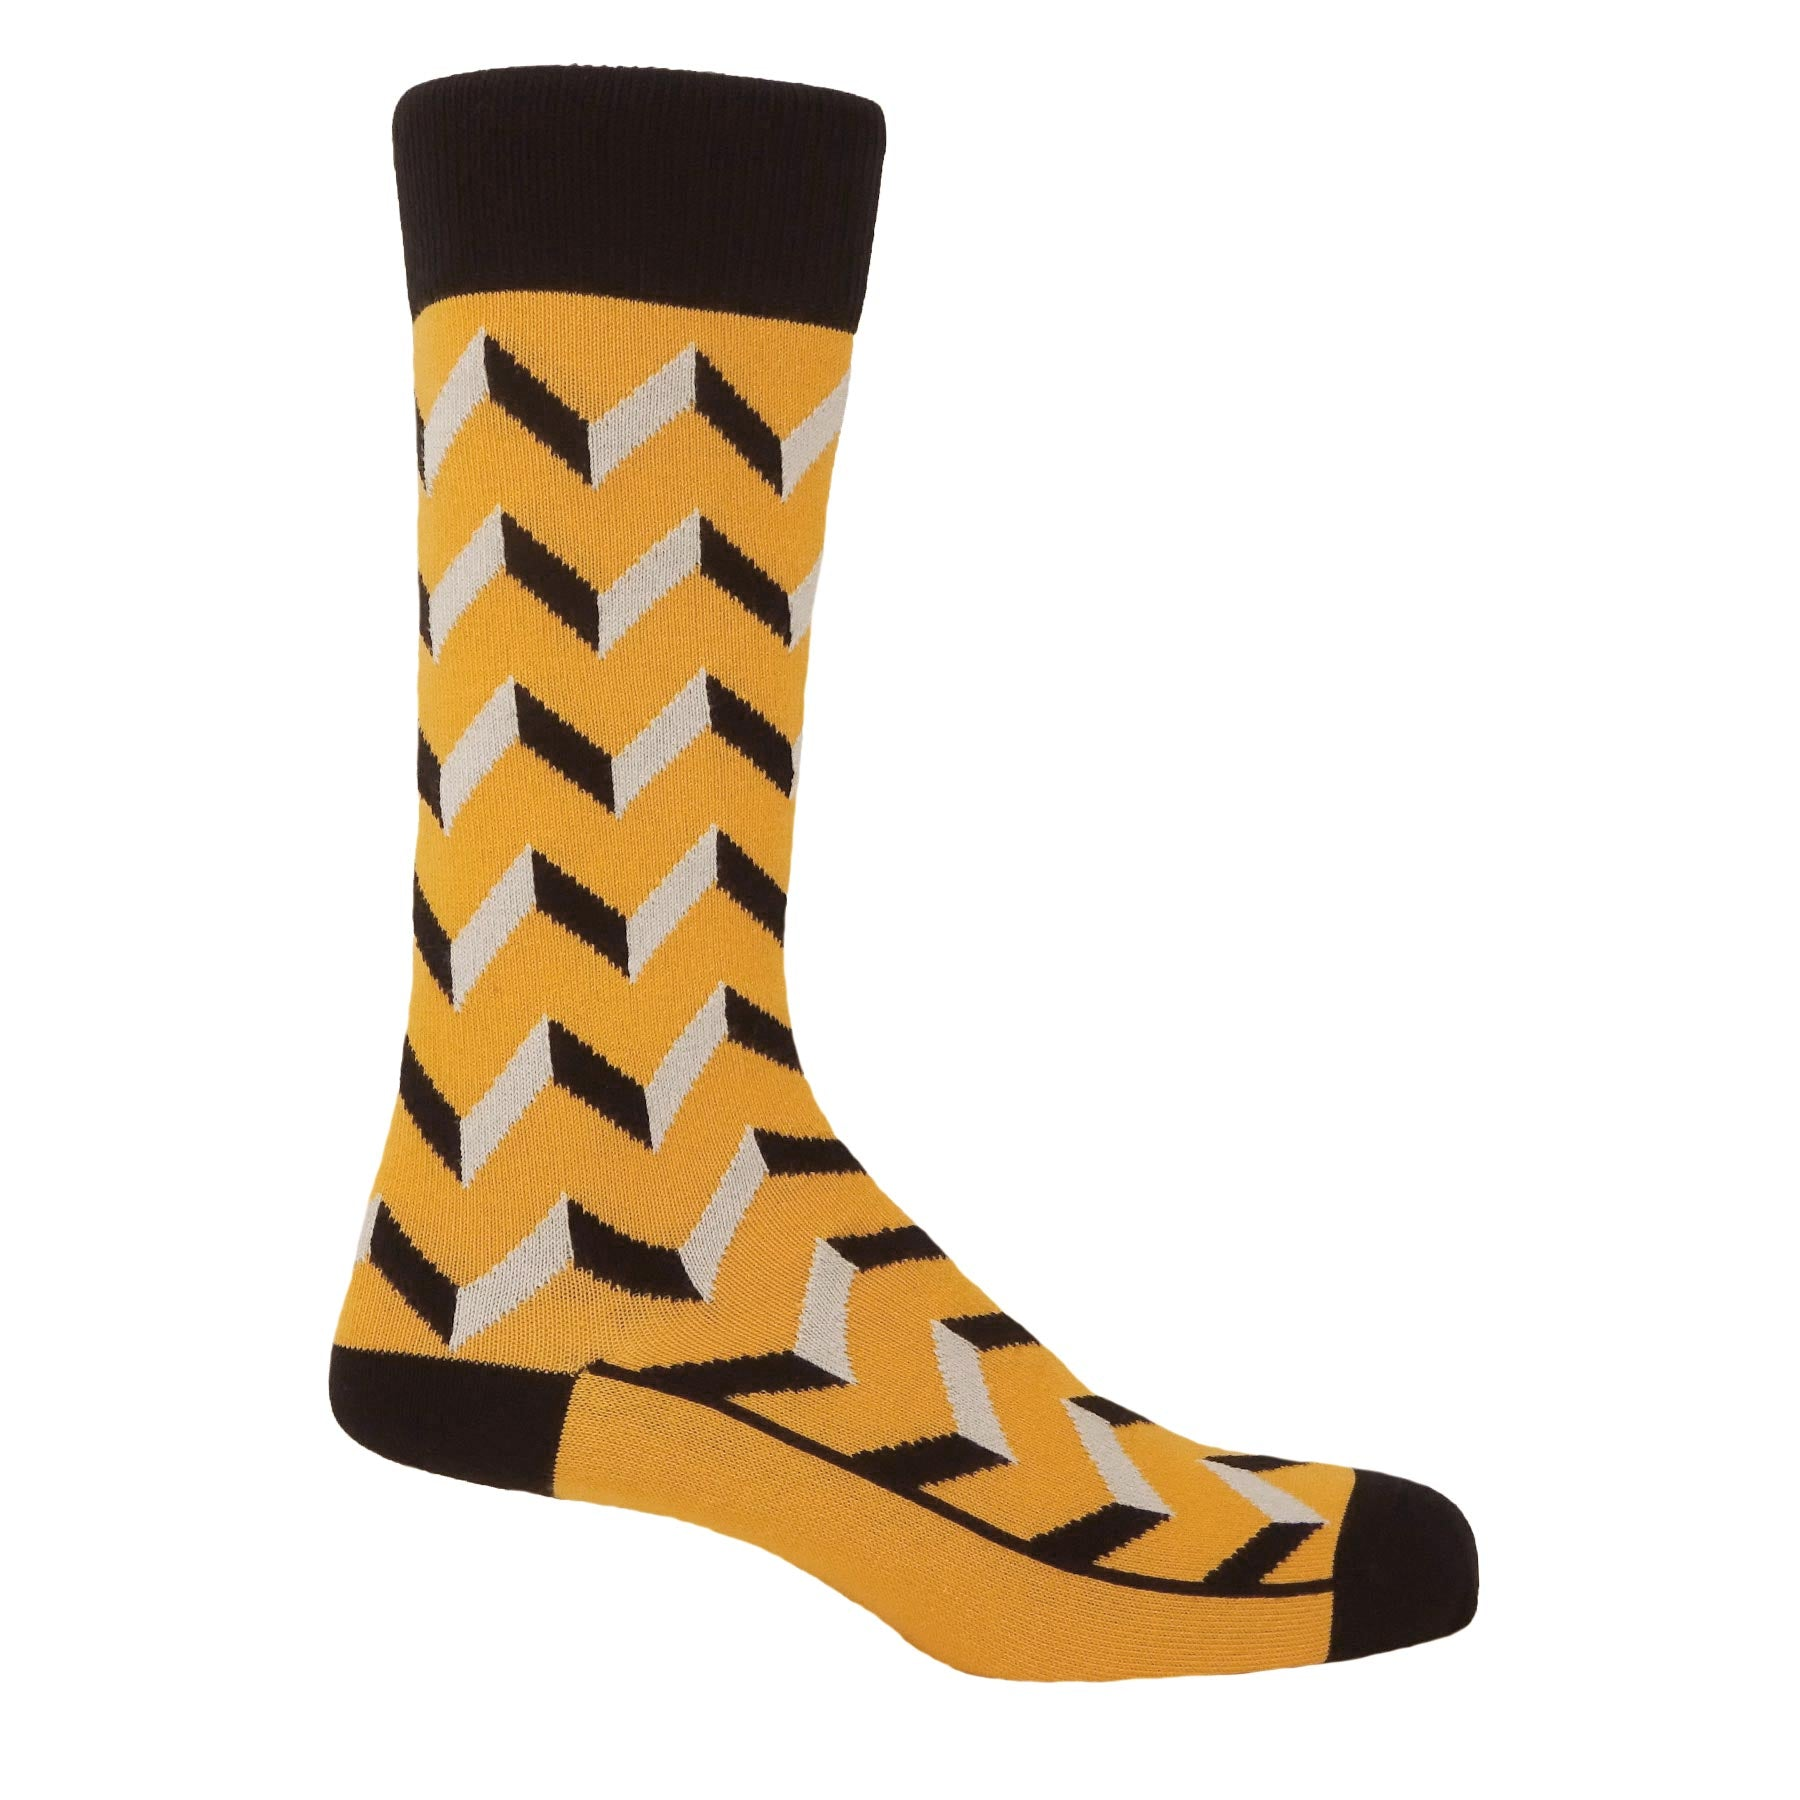 Optical Men's Socks - Mustard